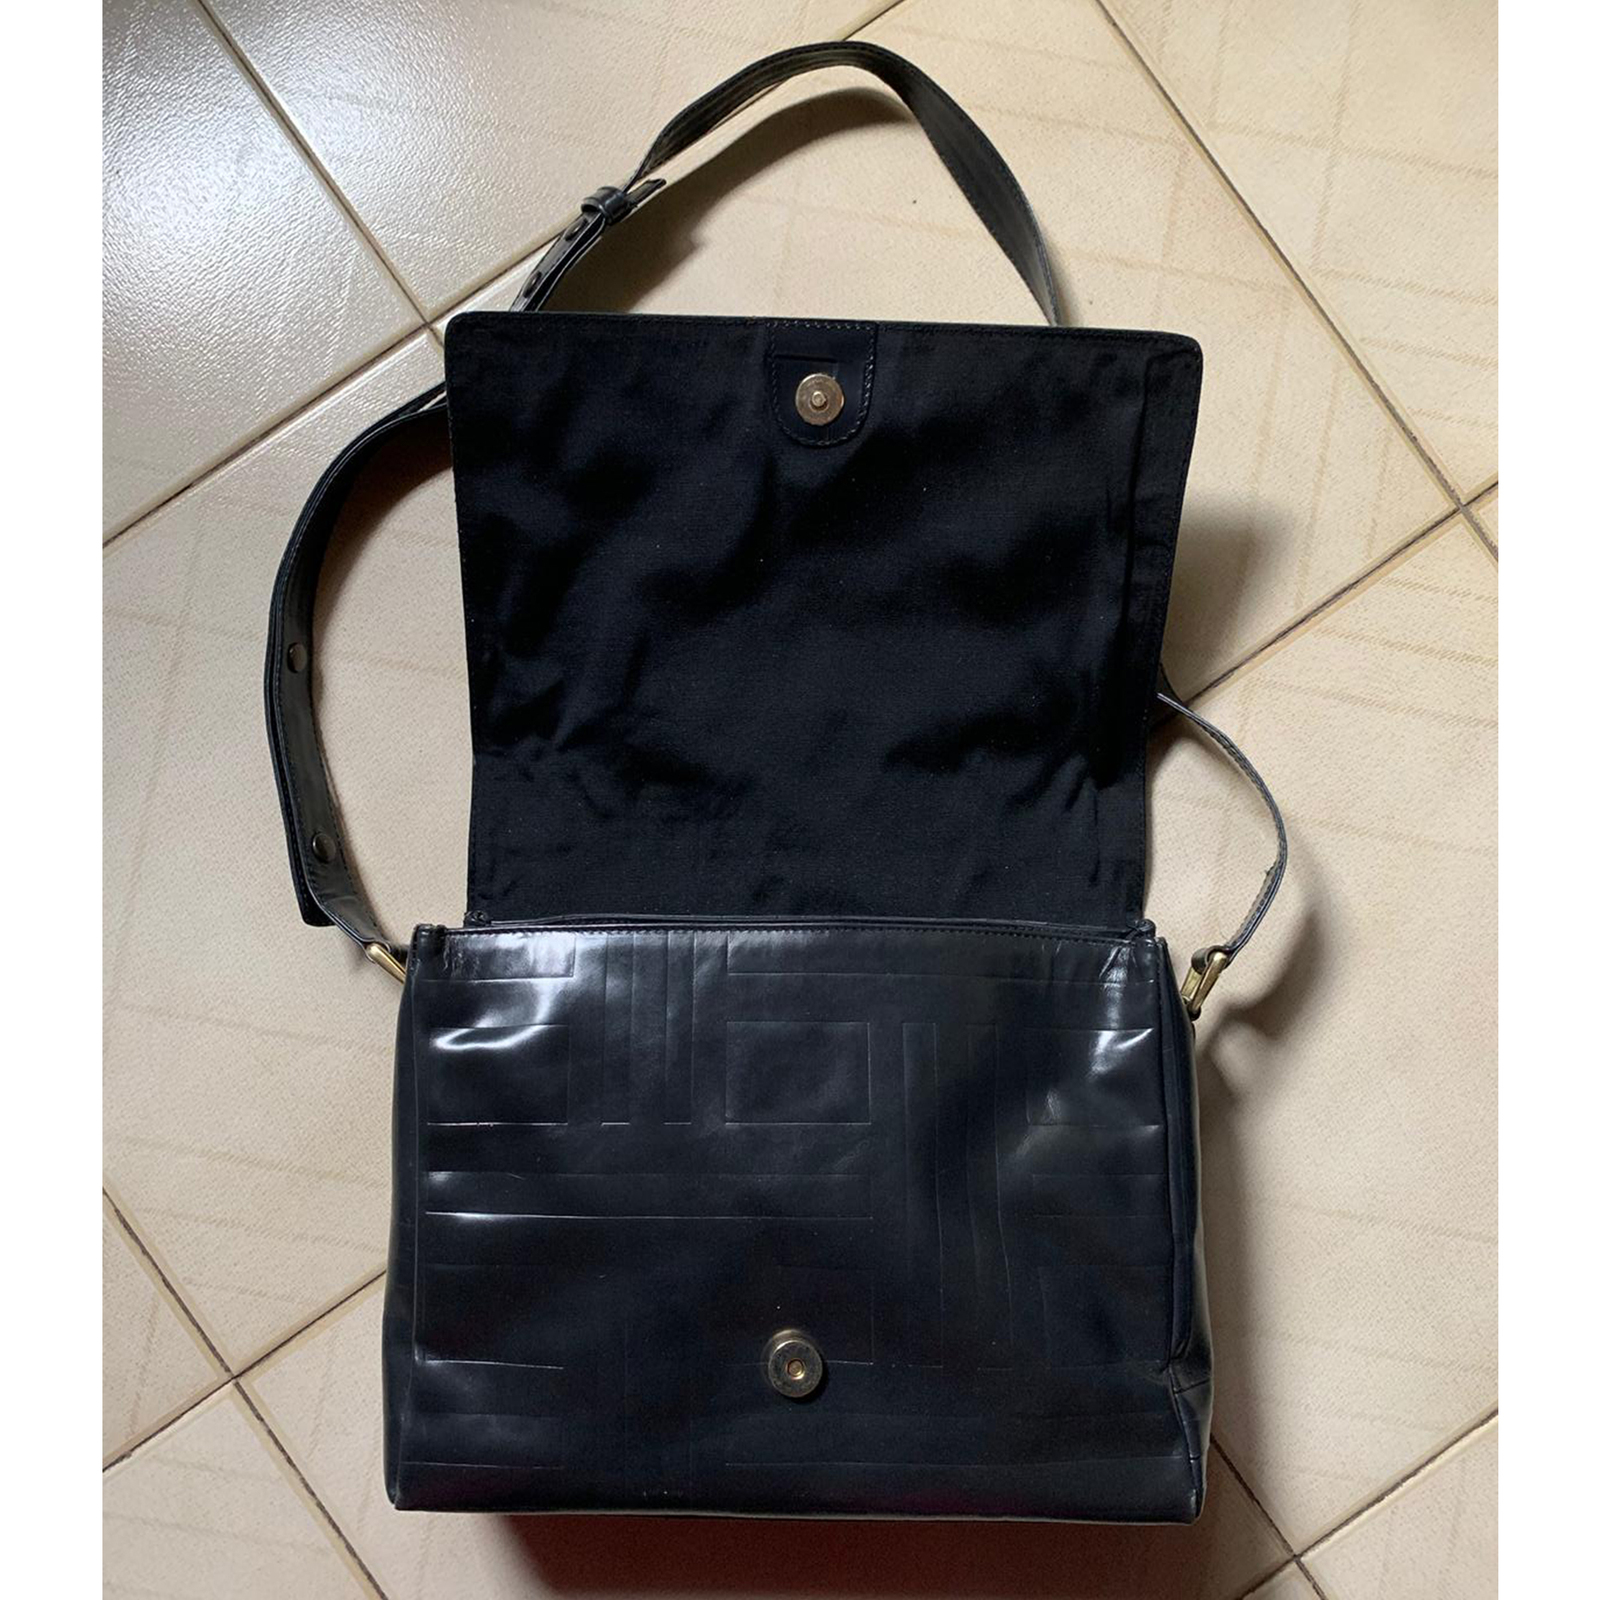 58d5333e165dcd Prada - Borsa a tracolla regolabile in pelle and 50 similar items